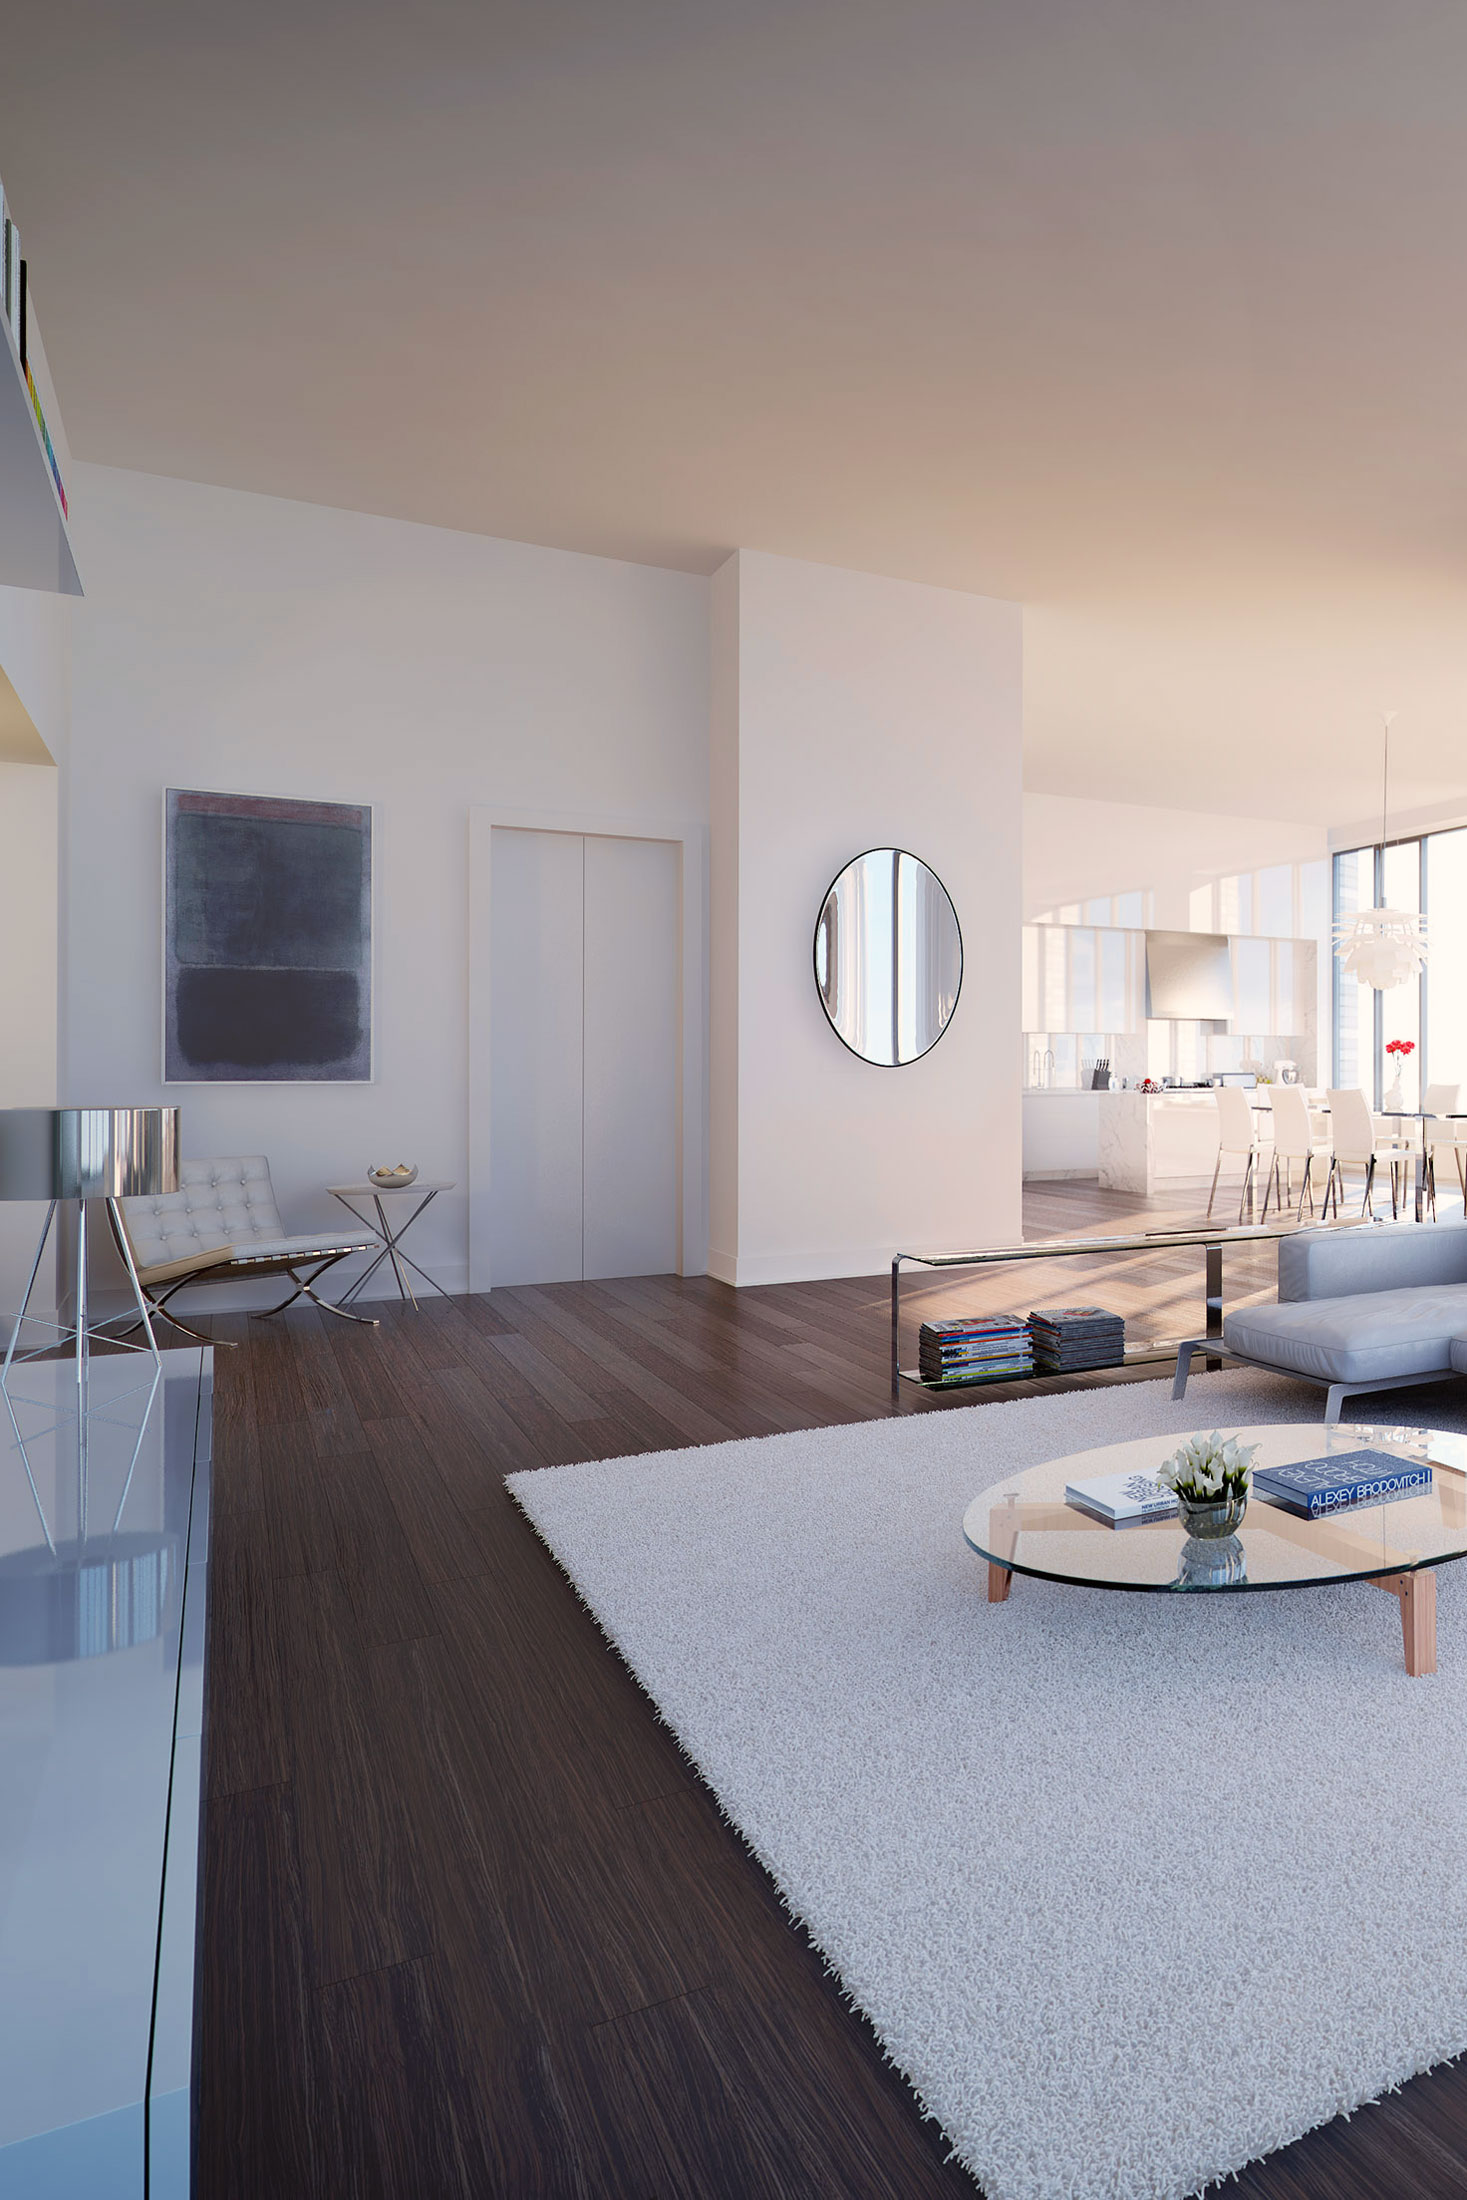 Architectural Rendering of the living room of the 5 Franklin Place project located in Tribeca, New York City